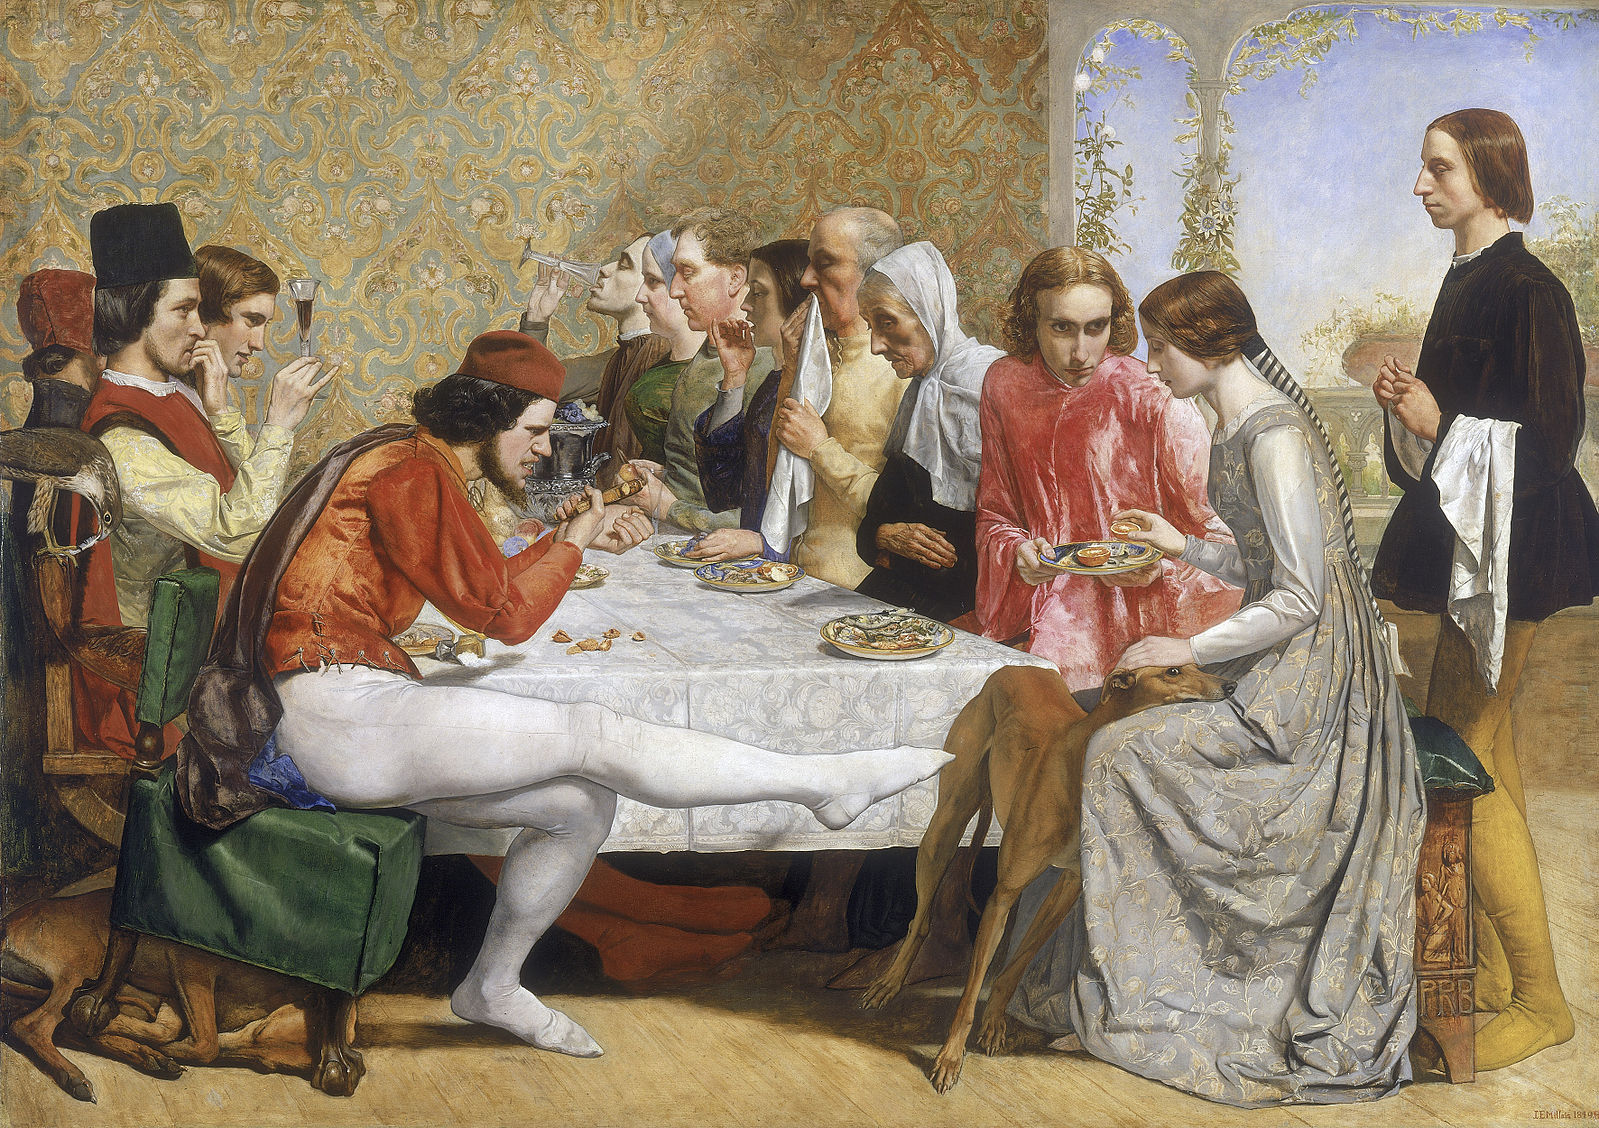 Isabella. John Everett Millais. We all have our own unique dispositions.